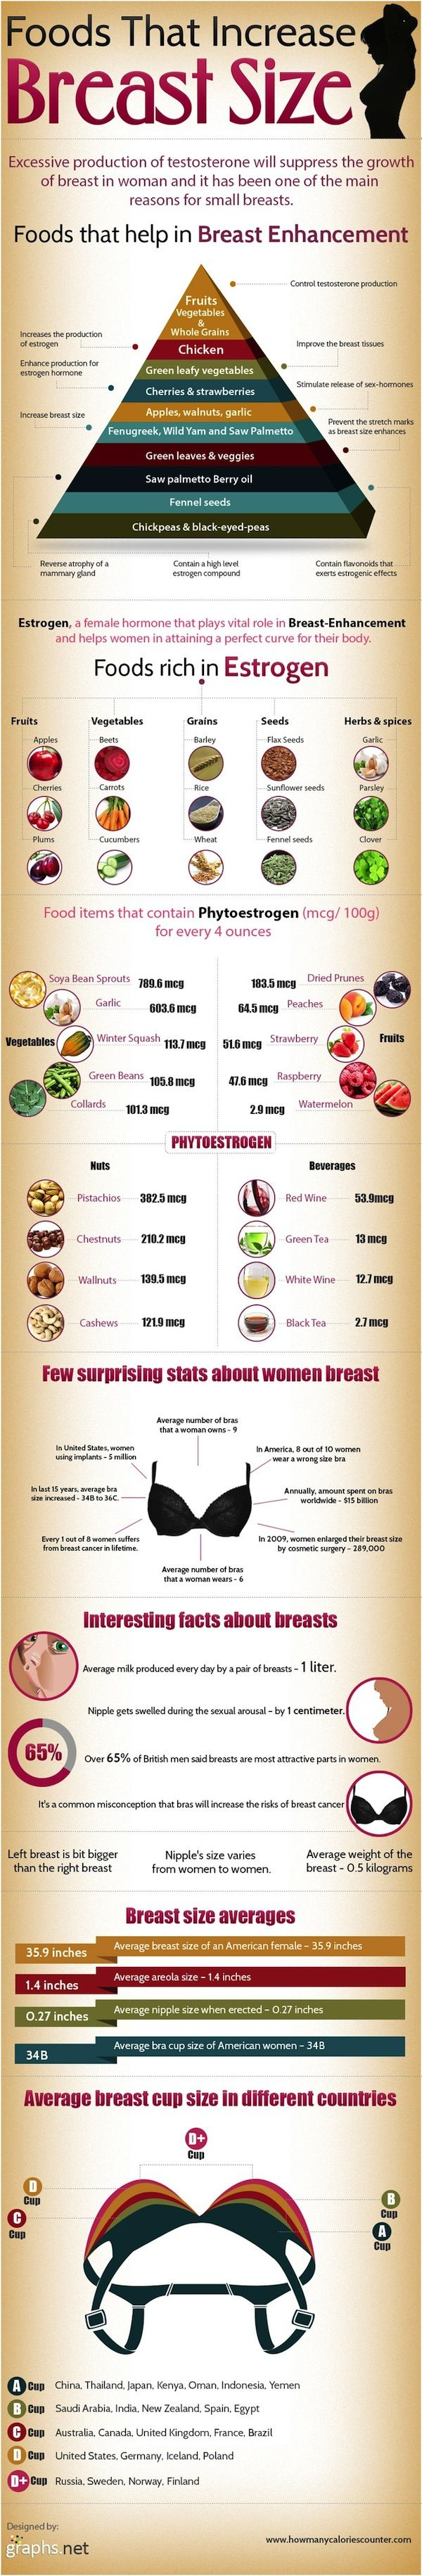 Food for Natural Breast Enlargement - PositiveMed